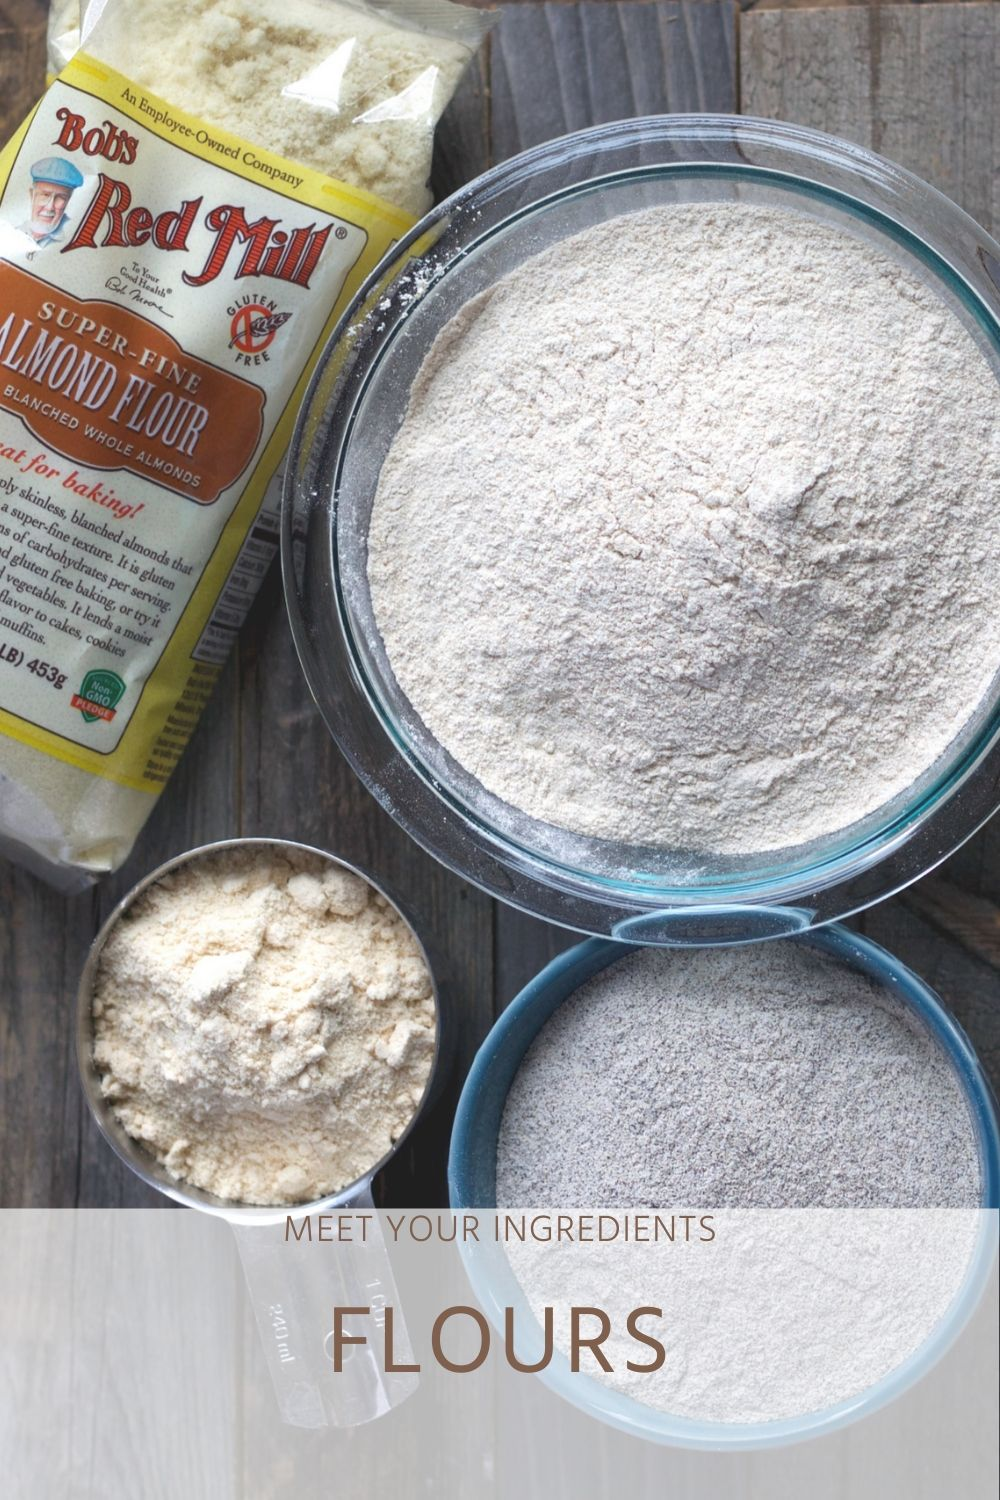 Meet Your Ingredients: Flour